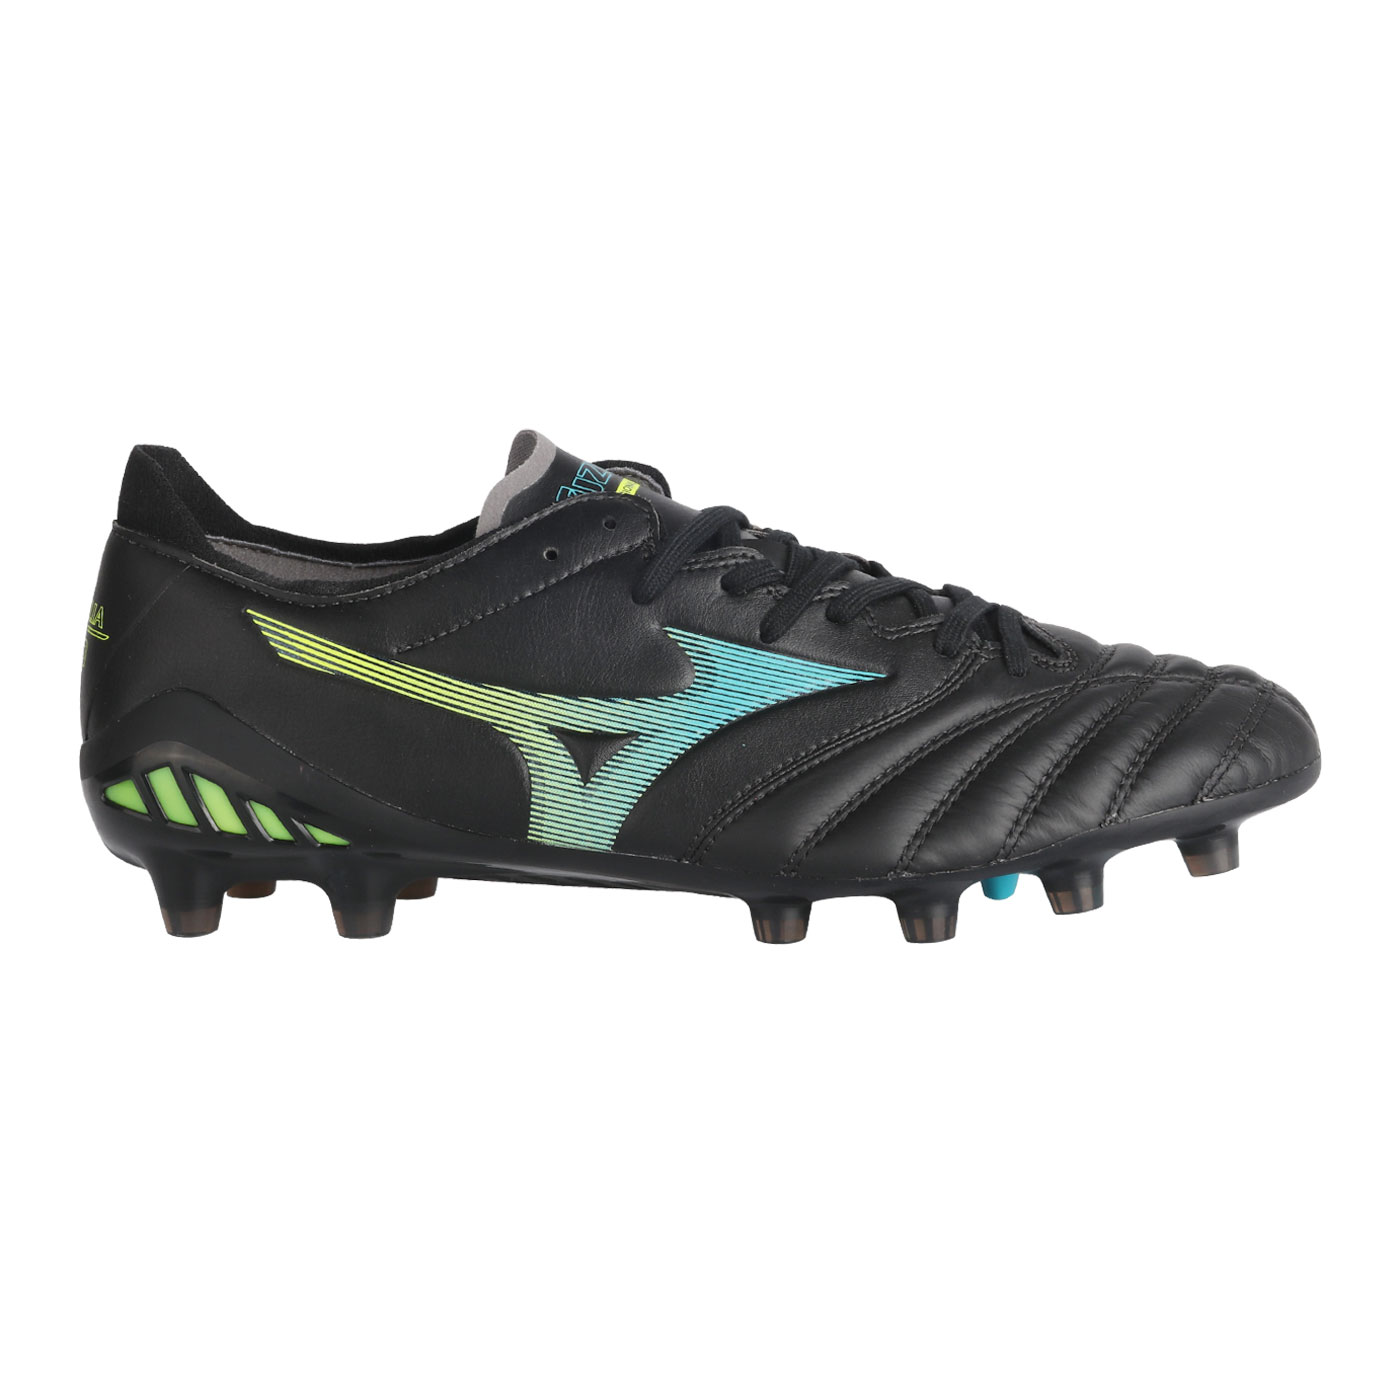 MORELIA NEO III ELITE-BLACK/BLUE ATOLL